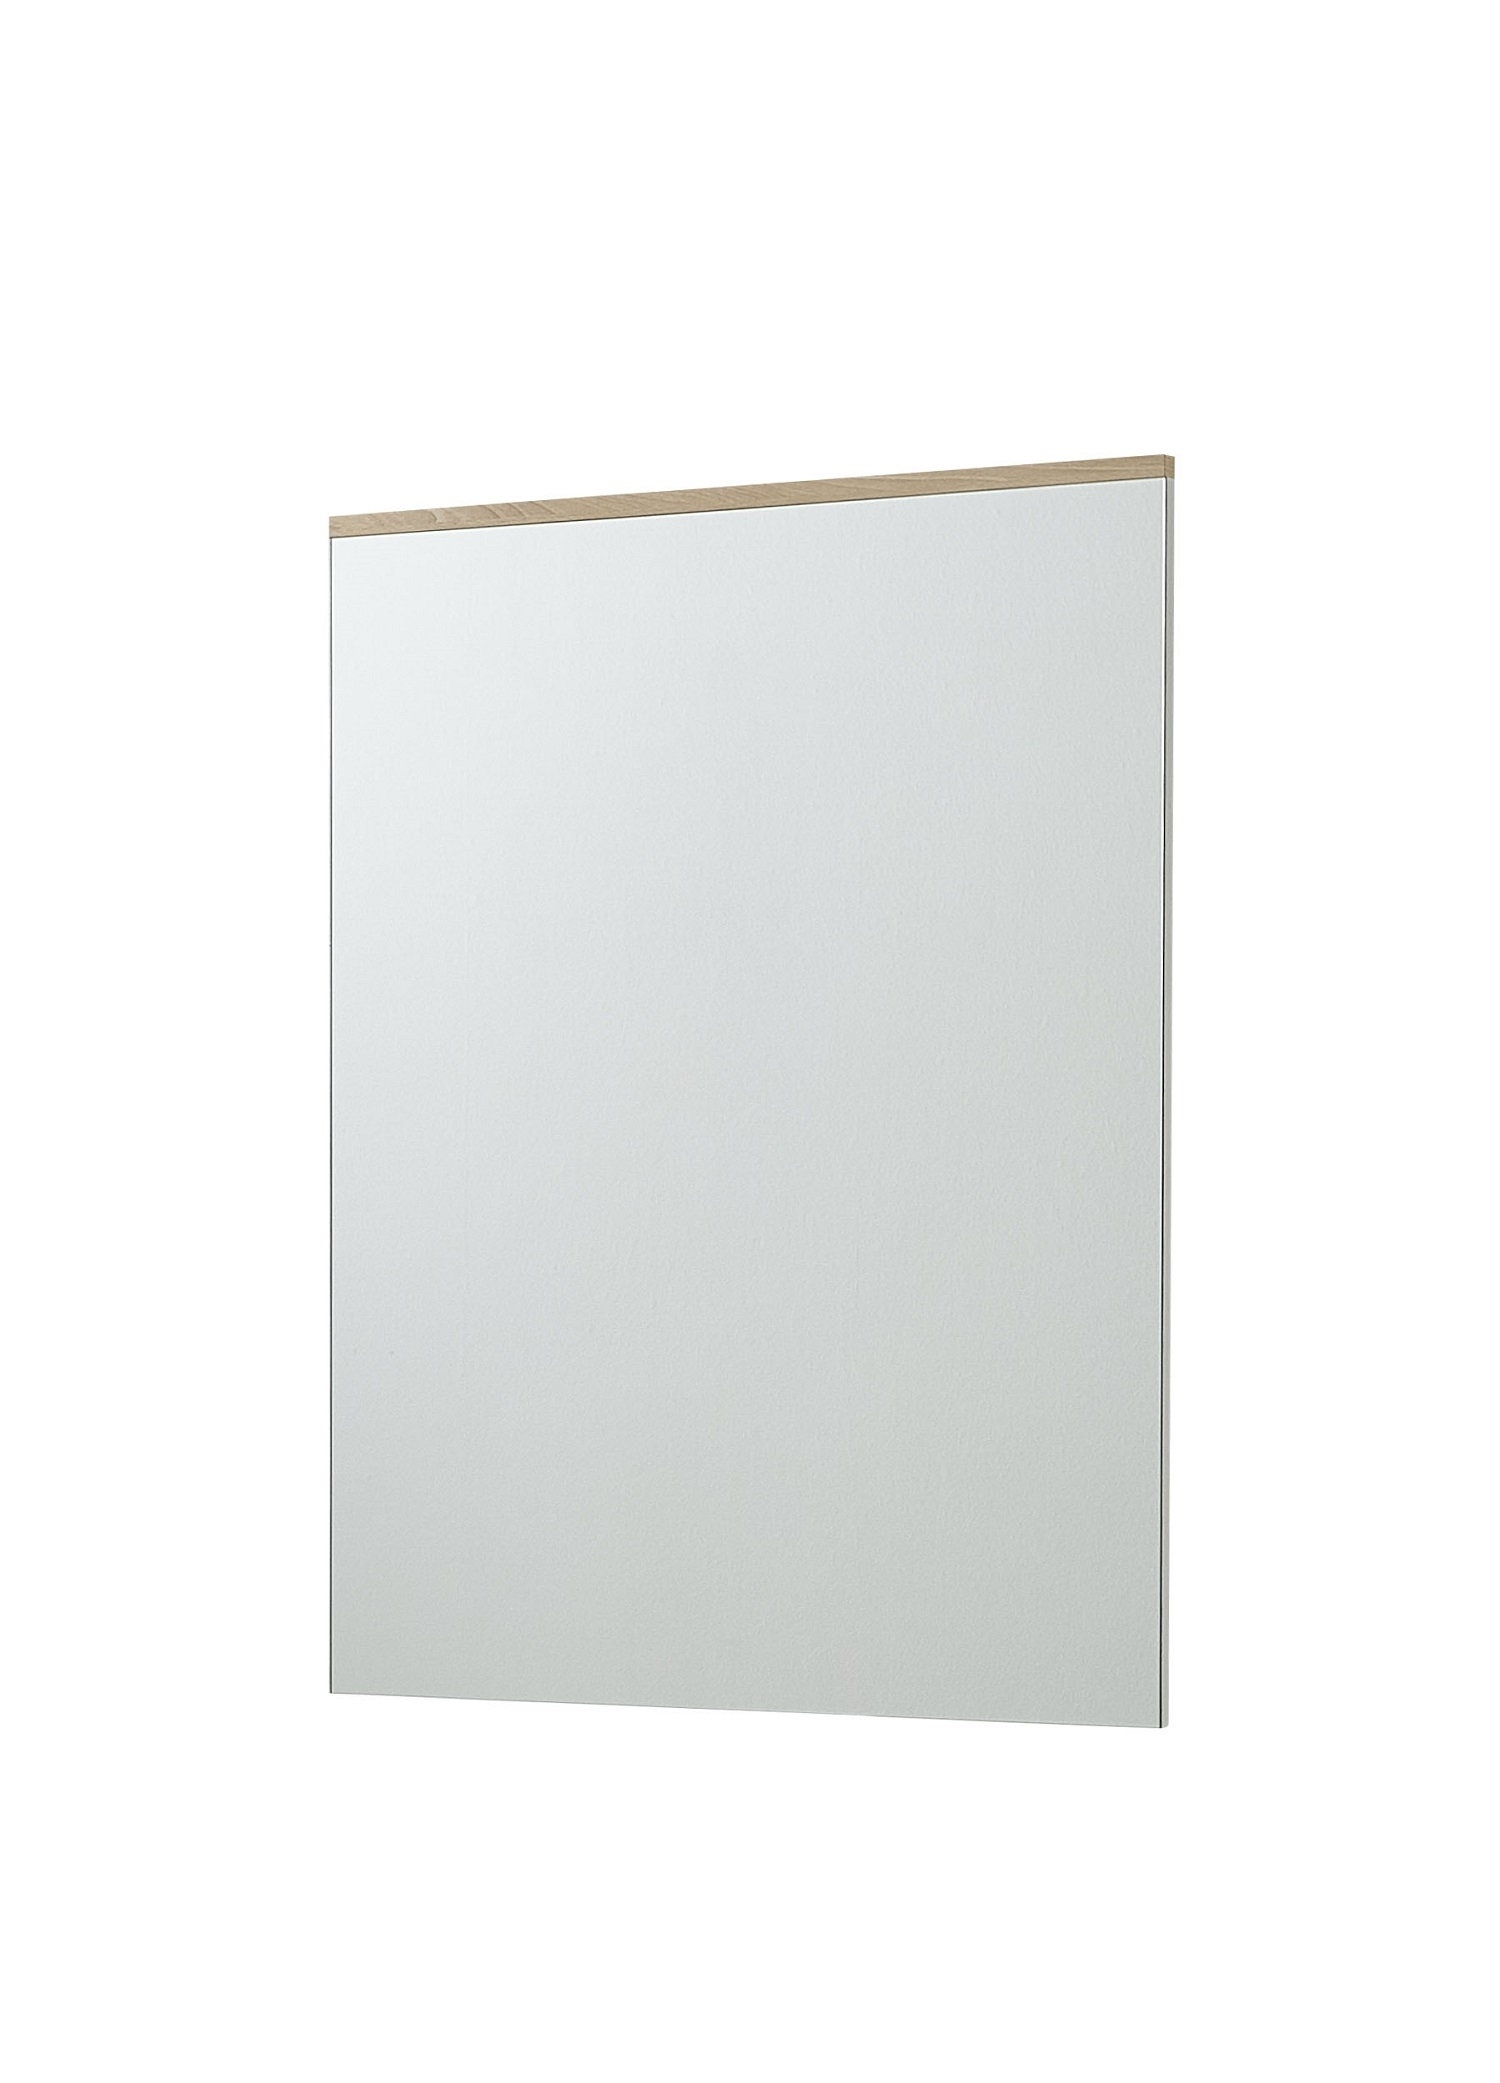 Oglinda decorativa din MDF, Renos Alb / Fag, 65 x 88 cm imagine